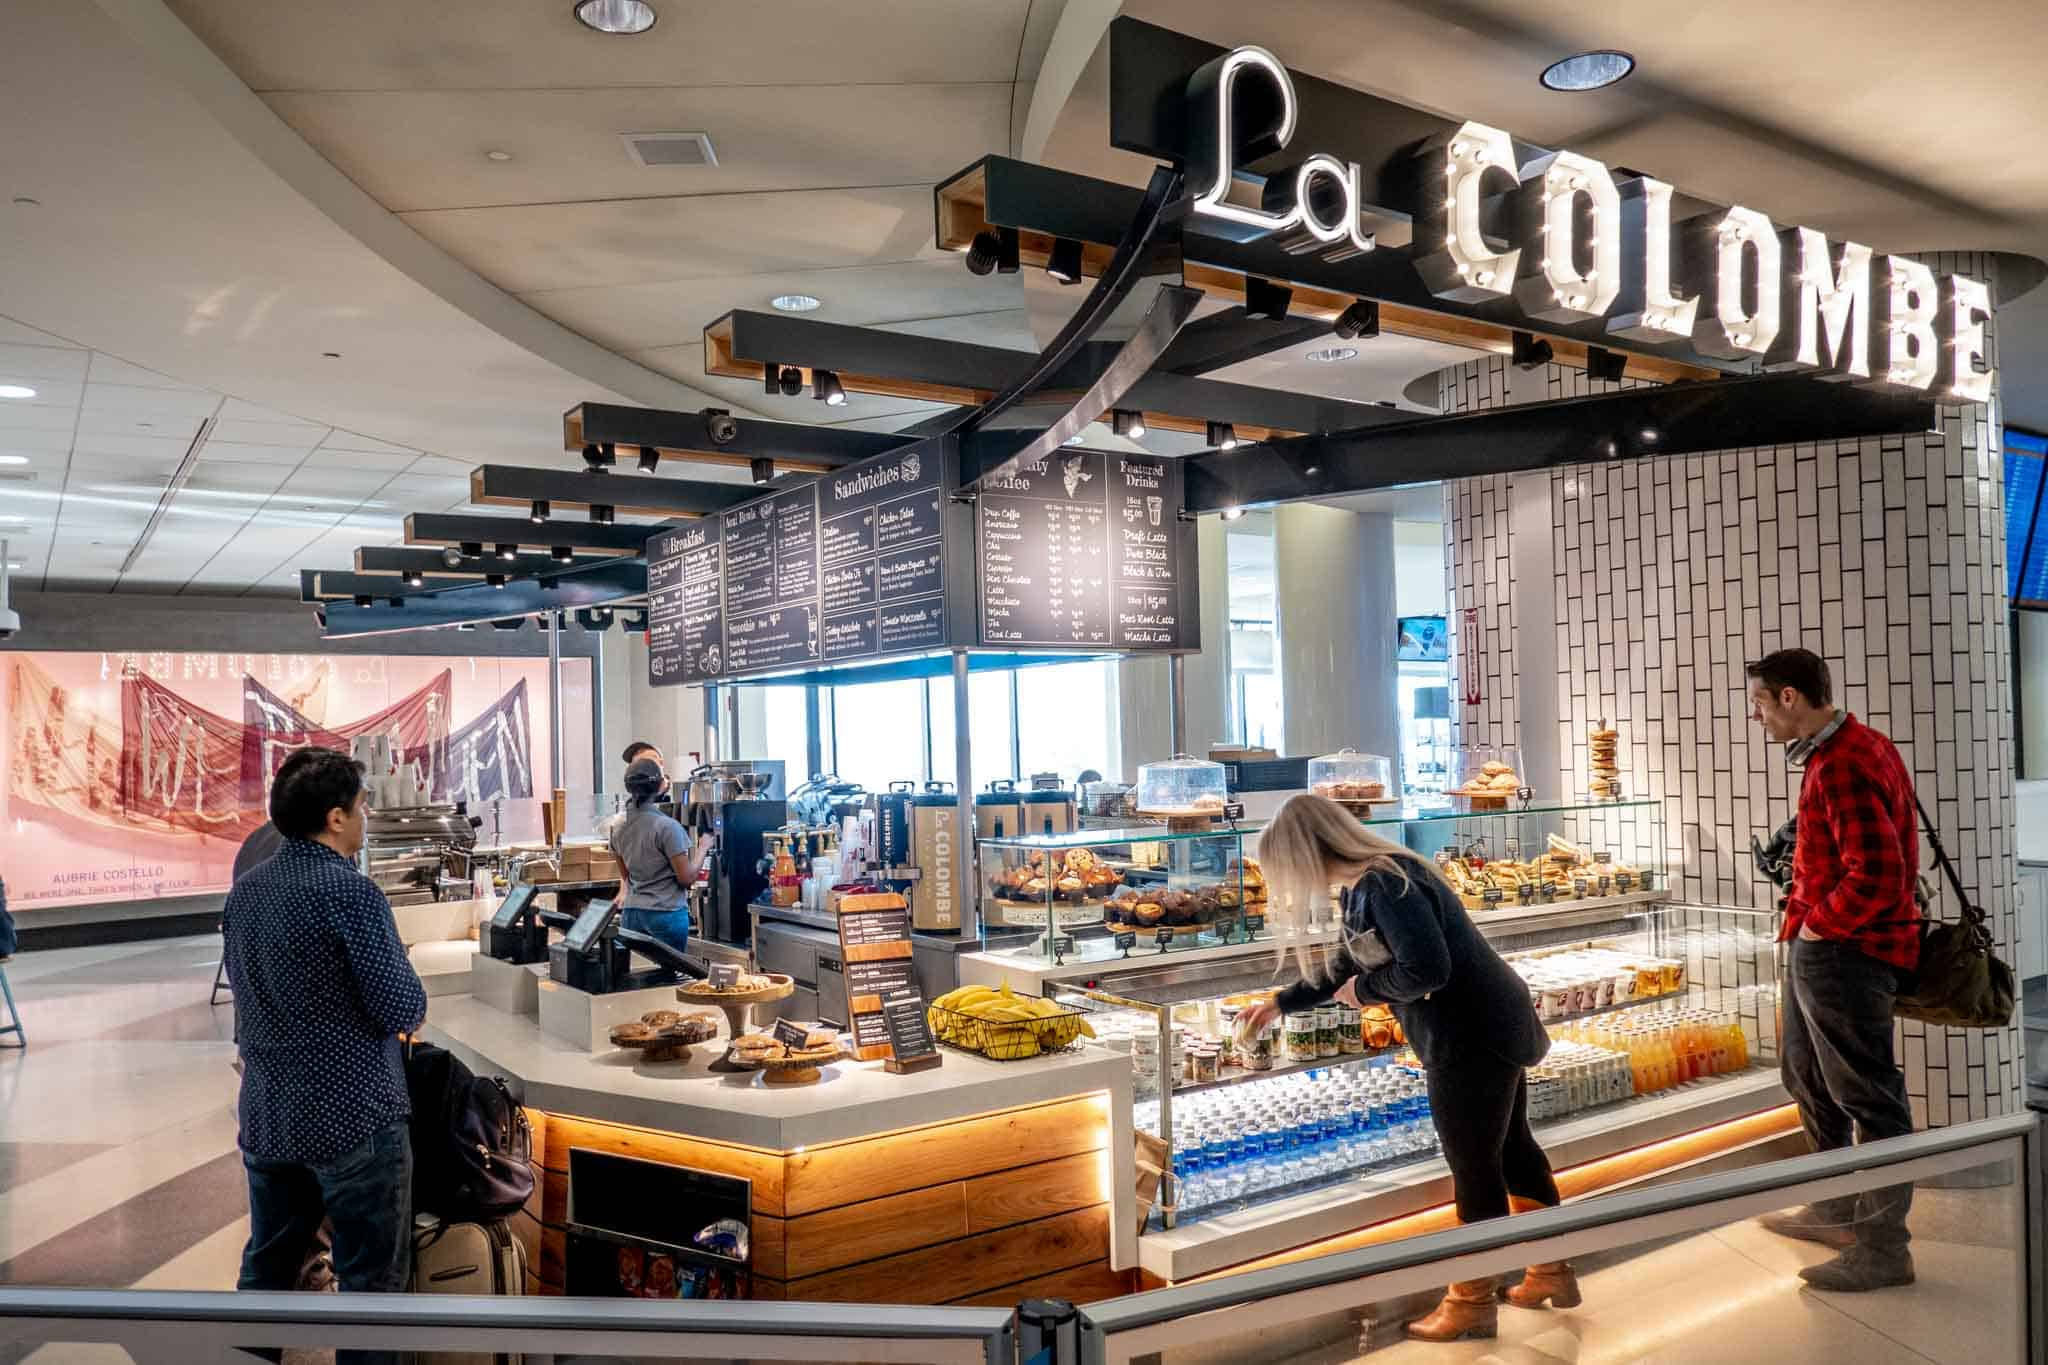 Customers buying food and drinks at La Colombe coffee bar